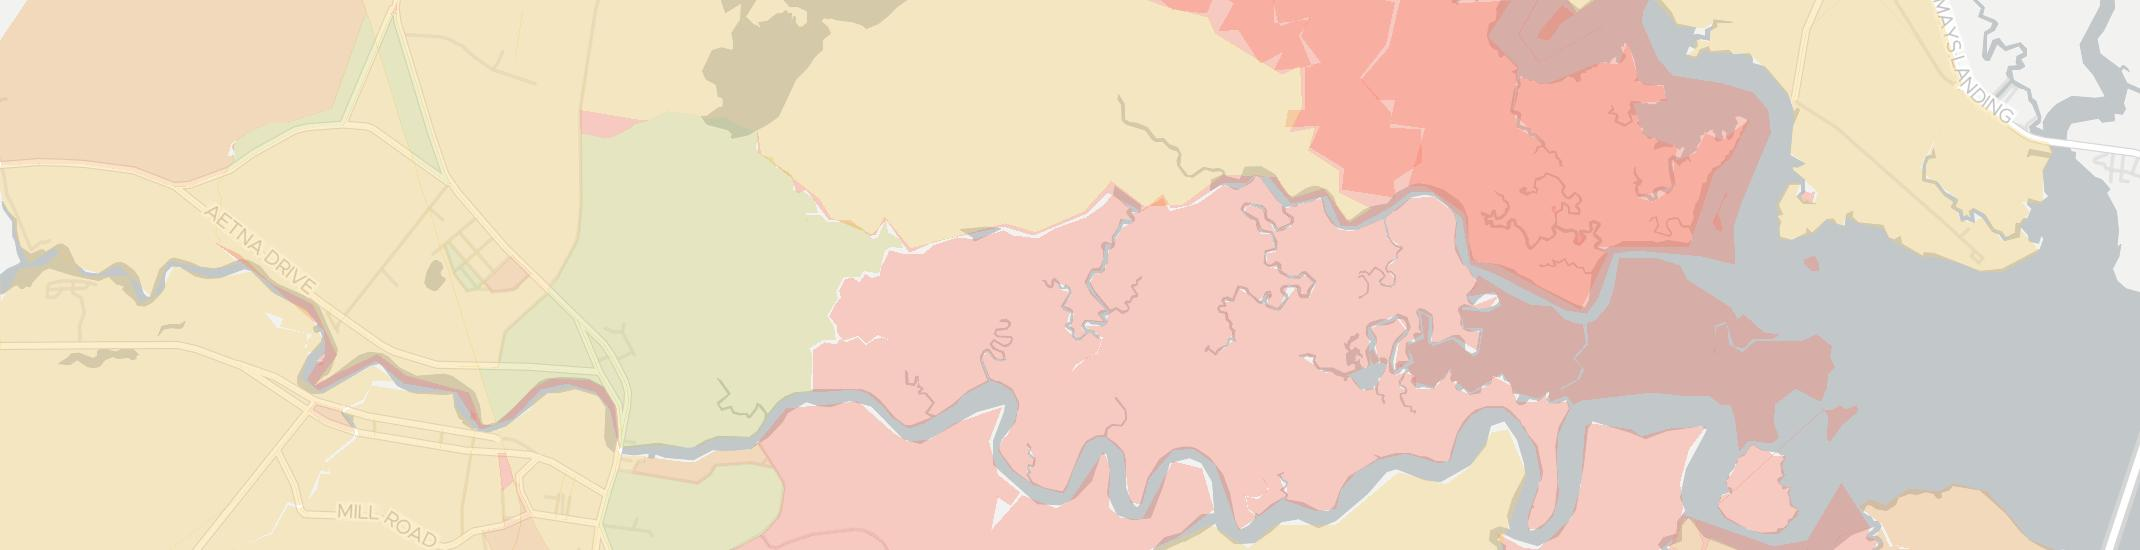 Corbin City Internet Competition Map. Click for interactive map.